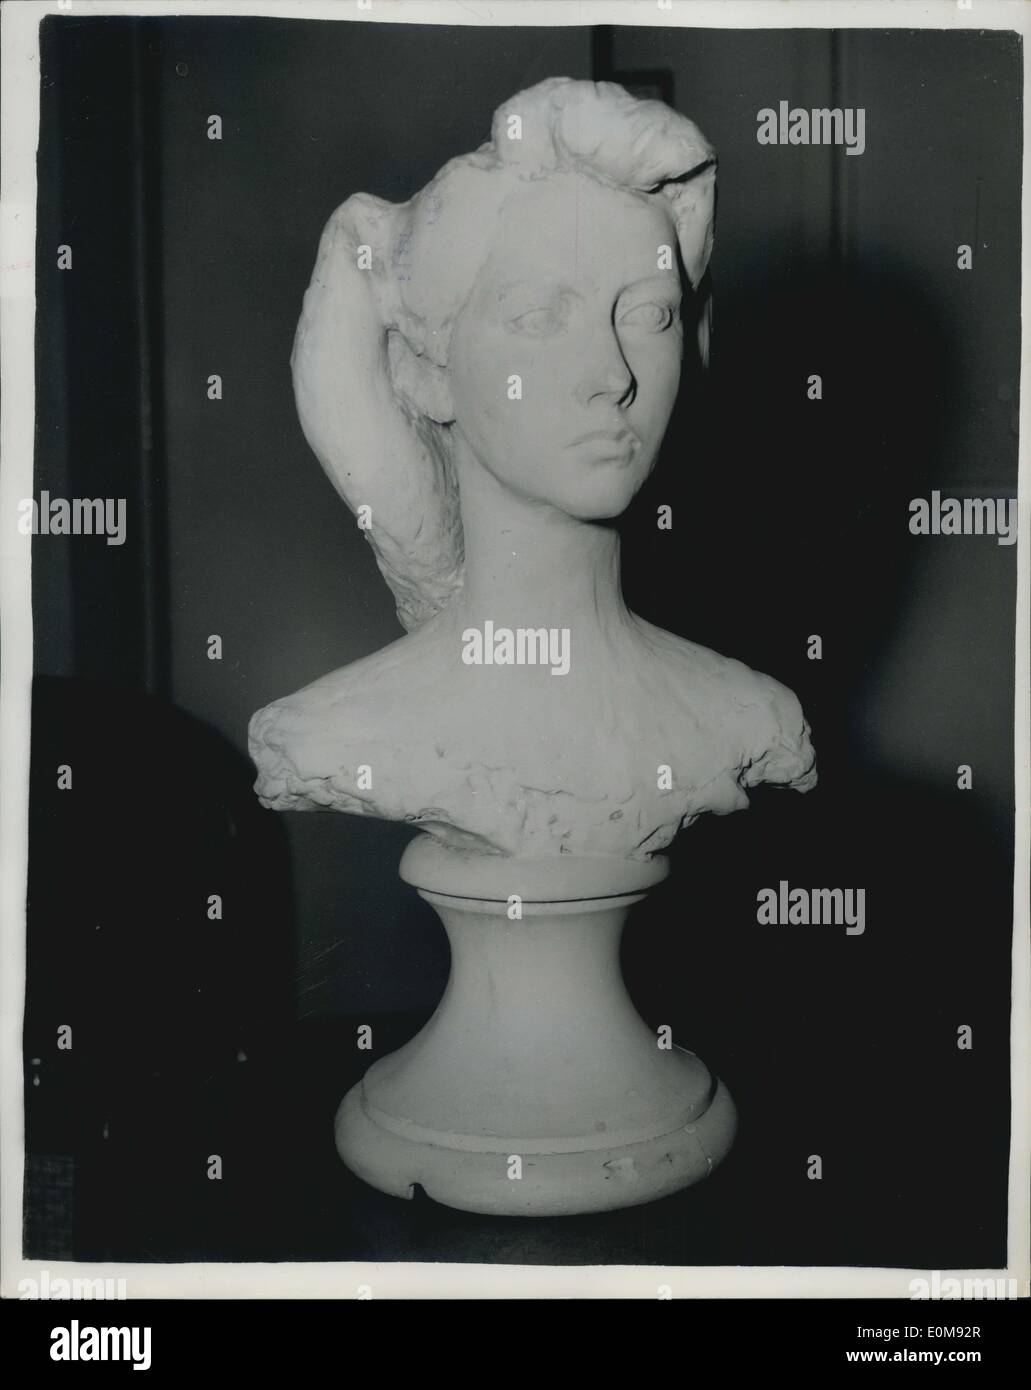 Feb. 11, 1954 - Cast ''Like The Queen'' Removed: A plaster cast of a girl's head and shoulders, being used for display purposes - Stock Image